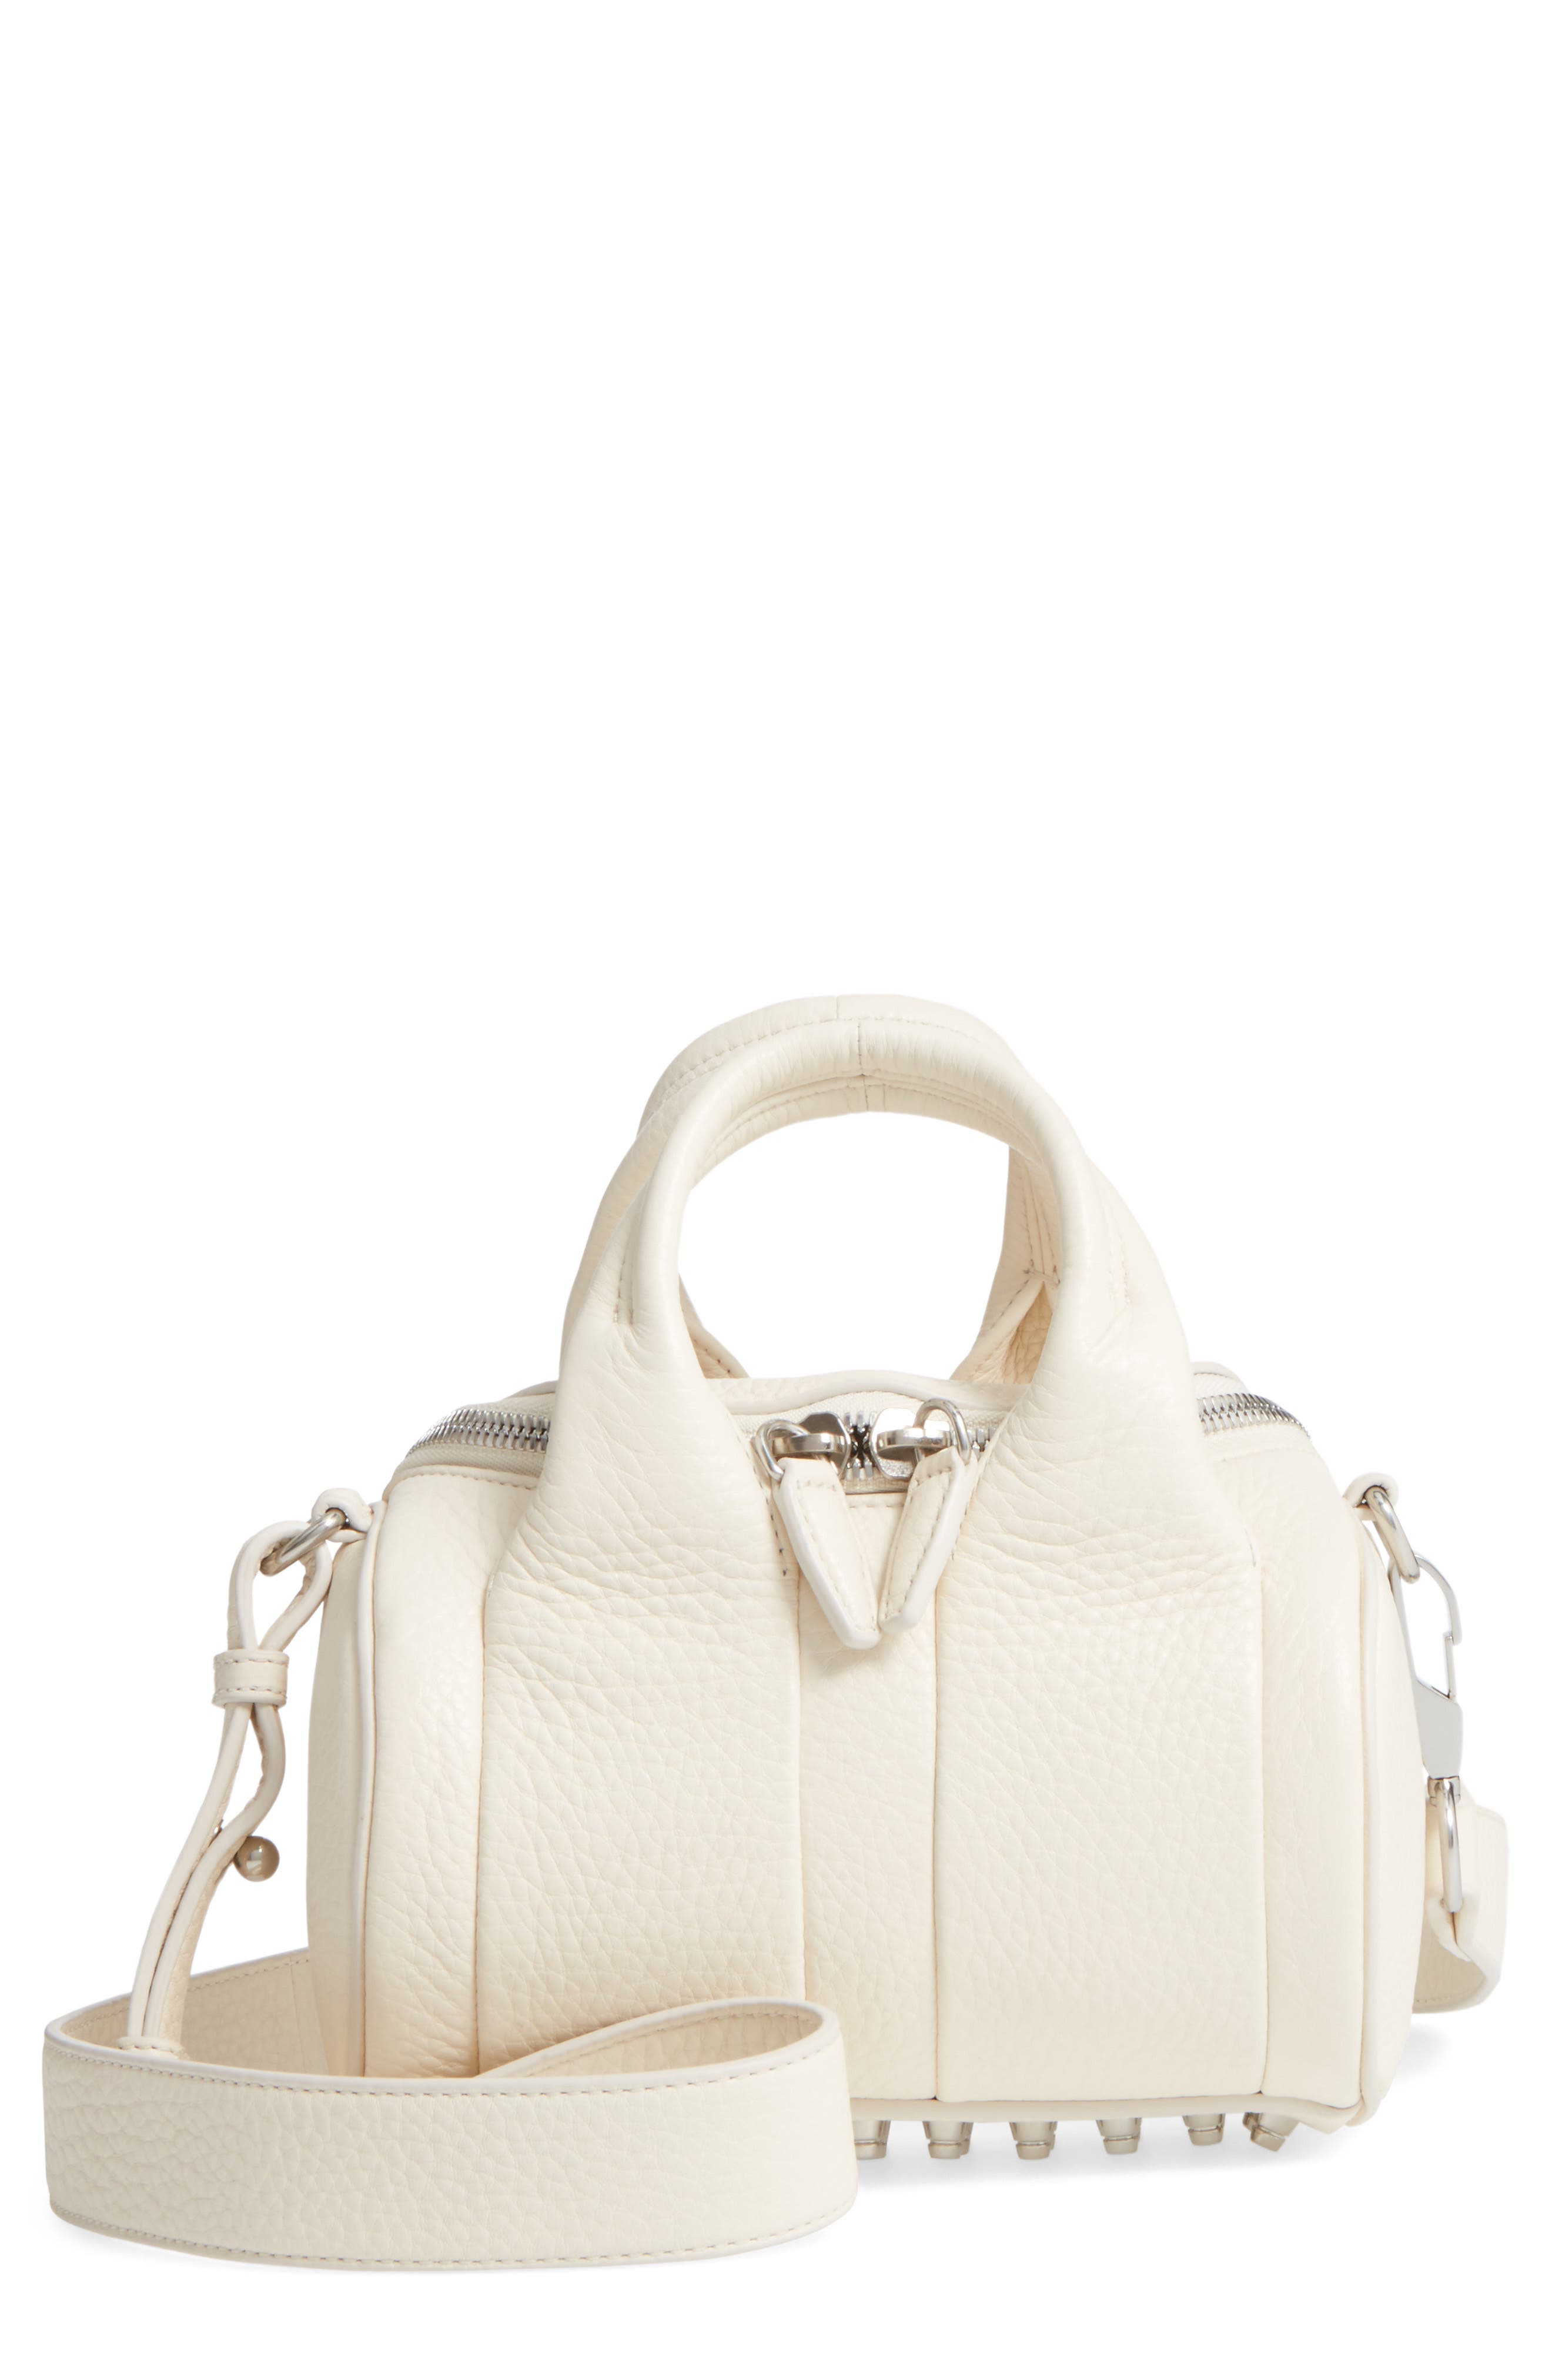 ALEXANDER WANG Mini Rockie Dumbo Slick Leather Satchel